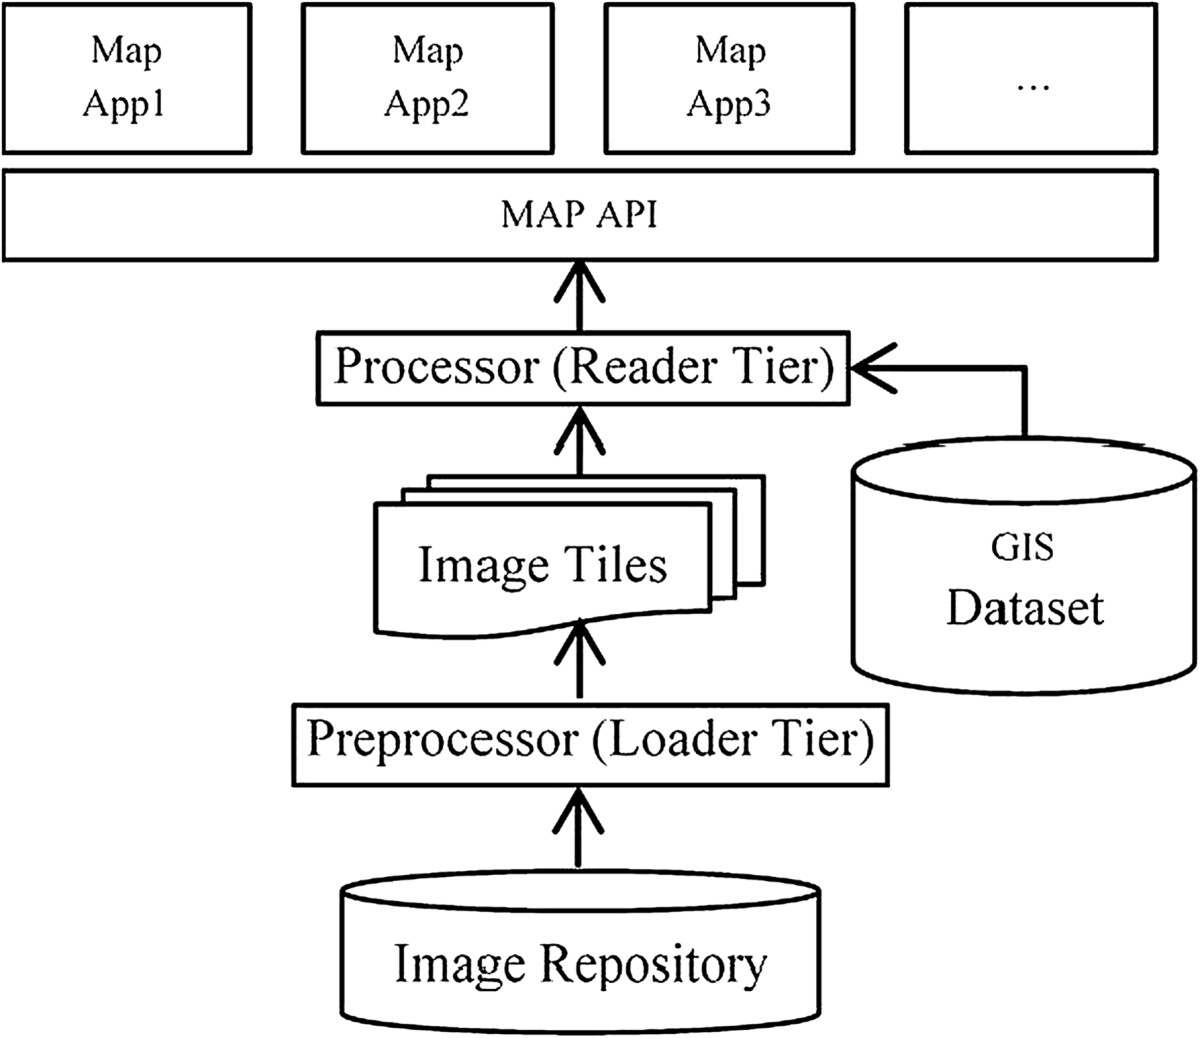 http://static-content.springer.com/image/art%3A10.1186%2F2196-1115-1-4/MediaObjects/40537_2013_Article_3_Fig1_HTML.jpg